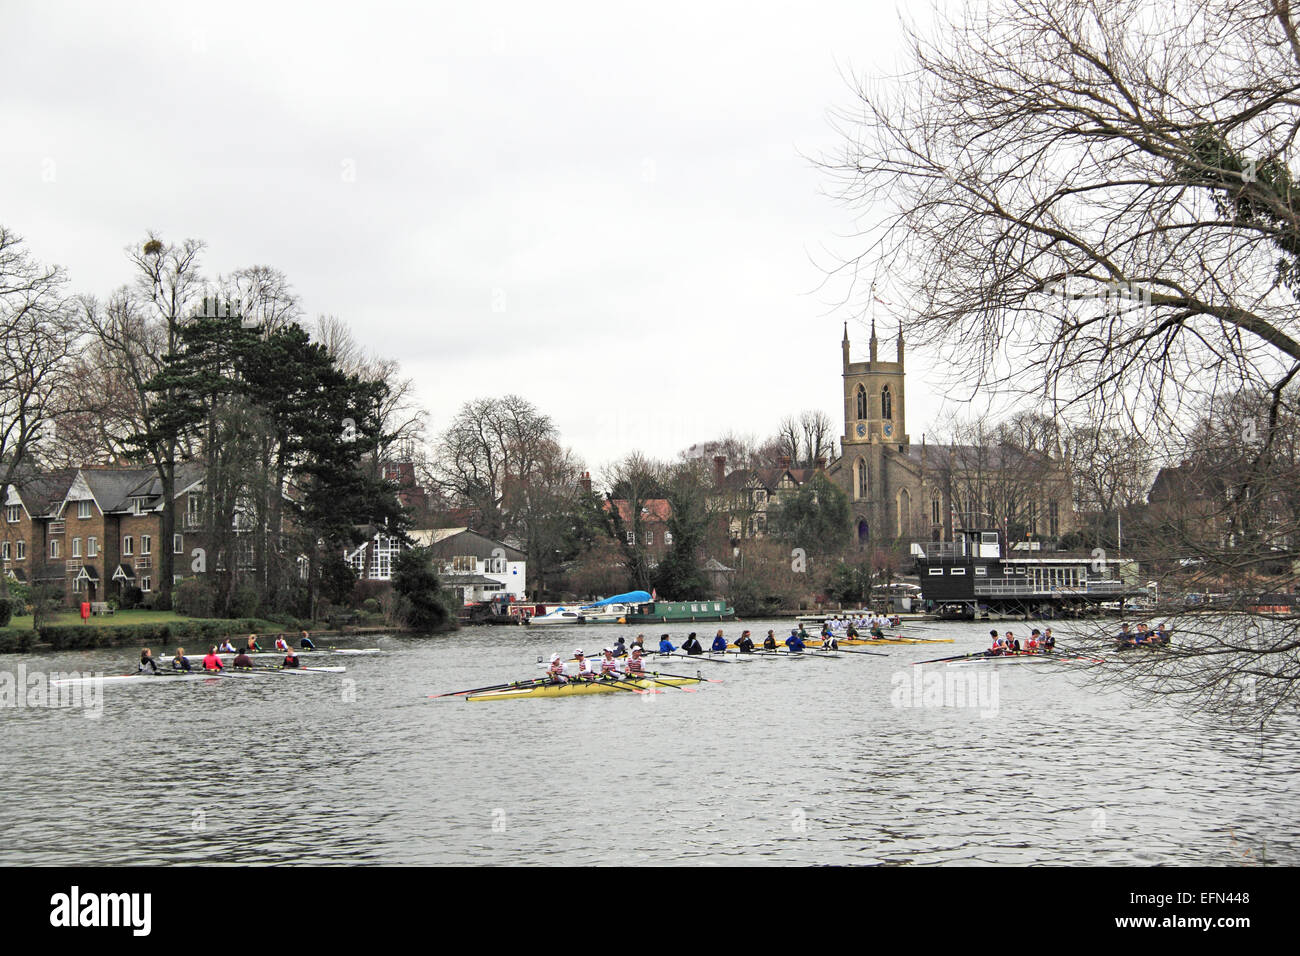 Kingston Rowing Club (nearest) J18A.4x-. Hampton Head (Junior 4s and 8s) rowing event.  River Thames, Hurst Park, - Stock Image